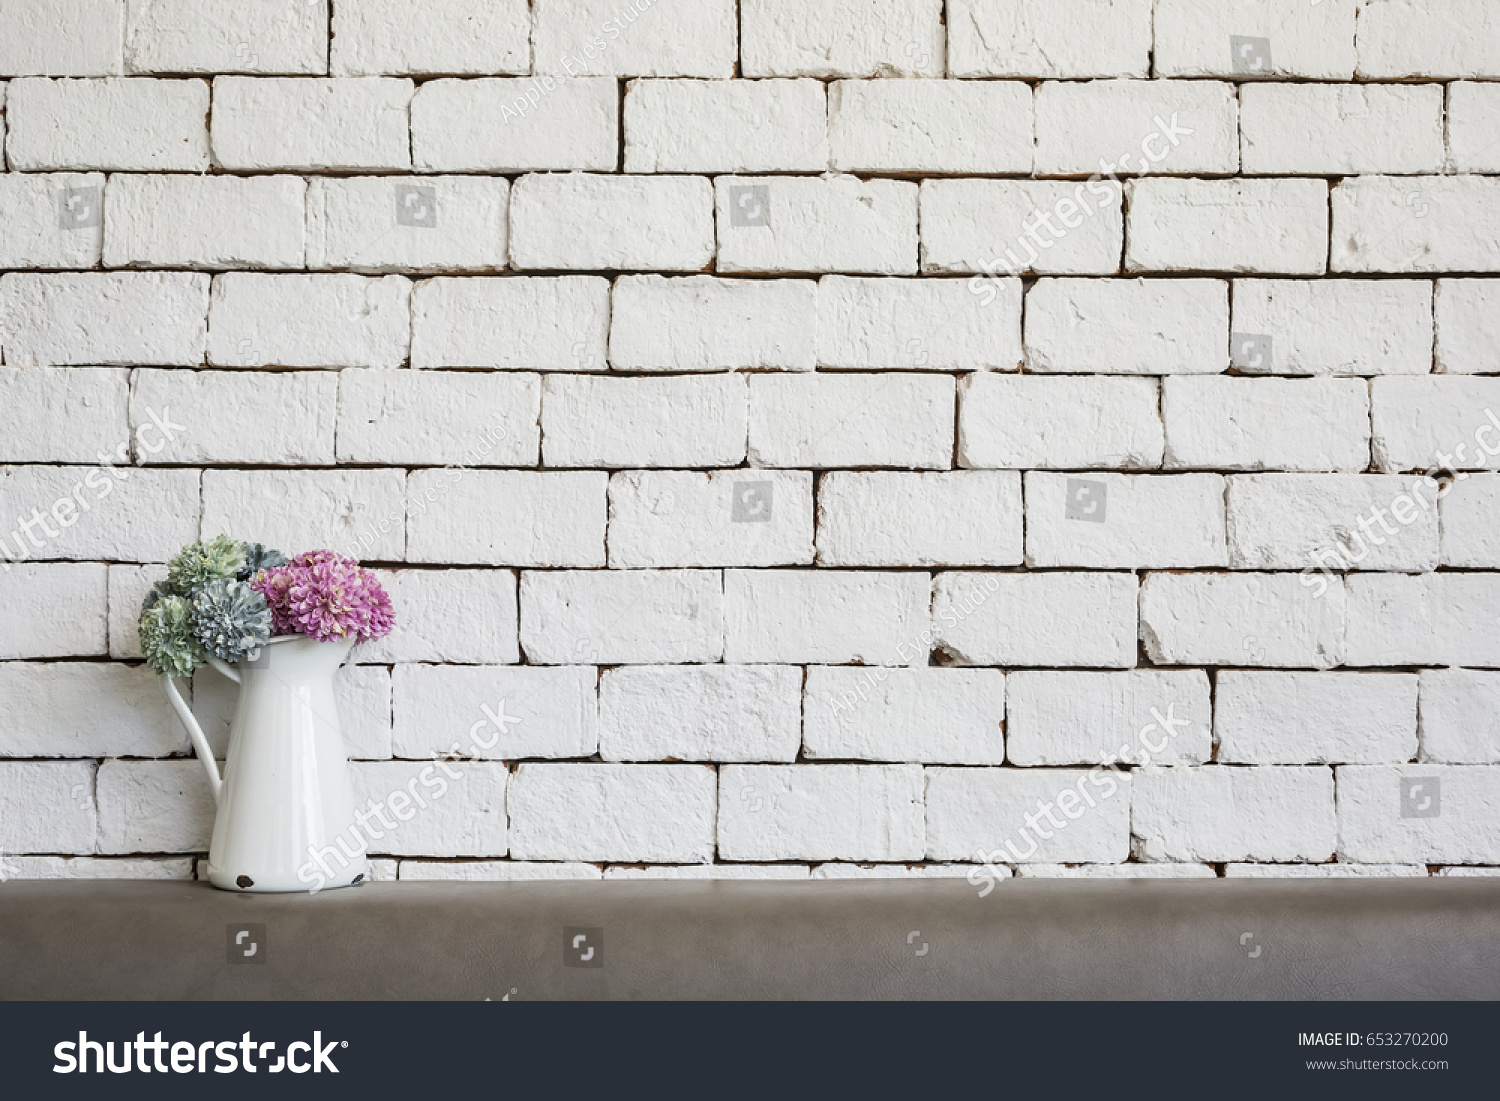 Flowers On White Brick Wall Background Stock Photo Edit Now 653270200